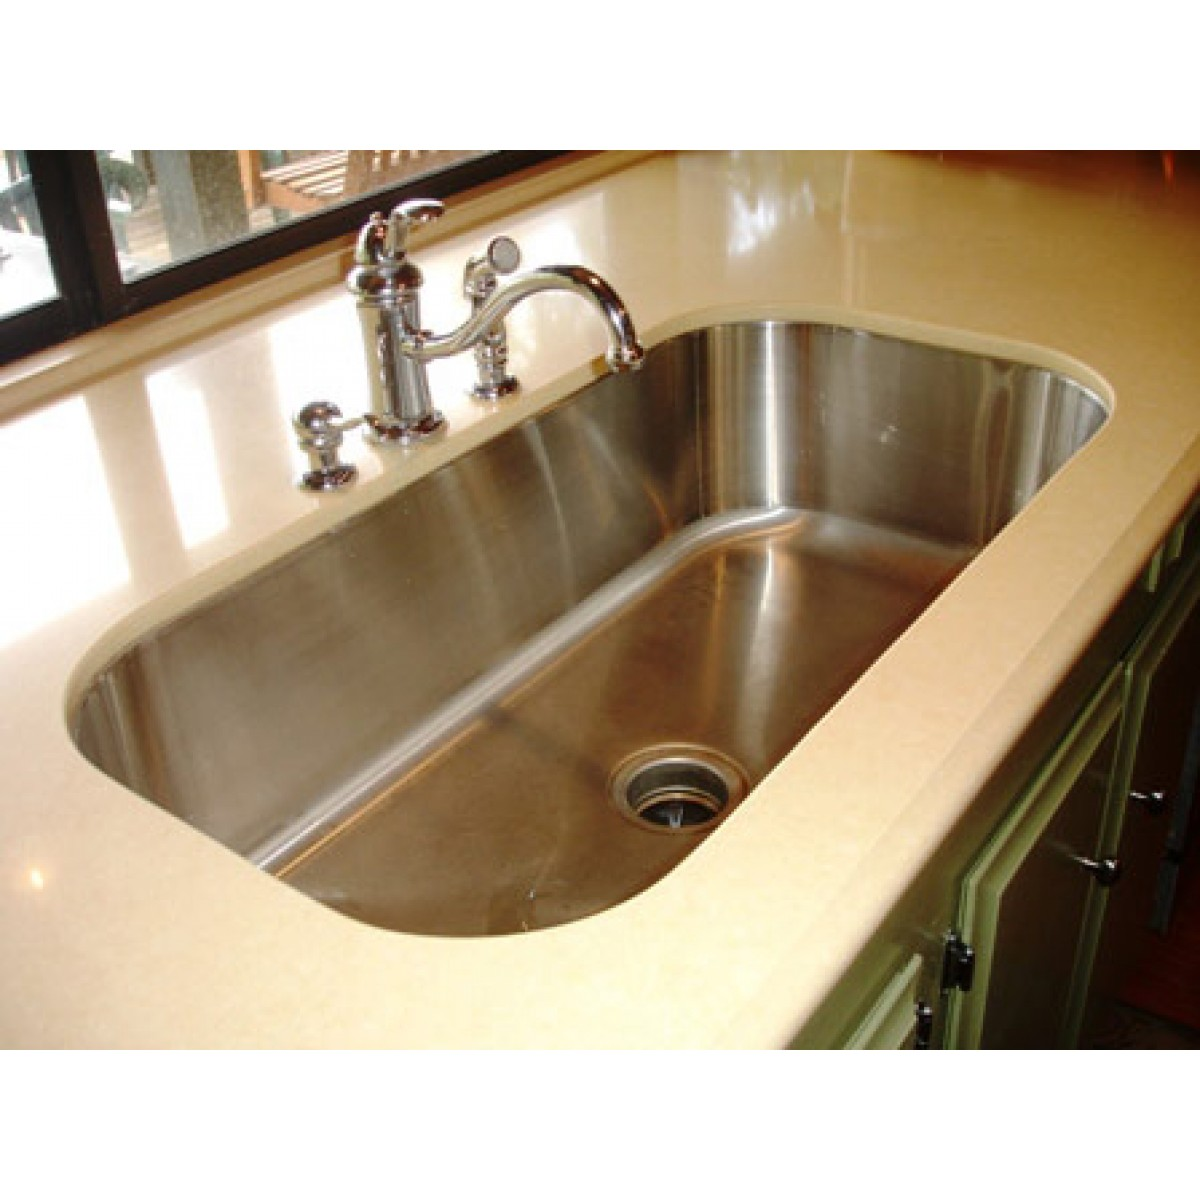 Stainless Steel Single Bowl Undermount Kitchen Sink